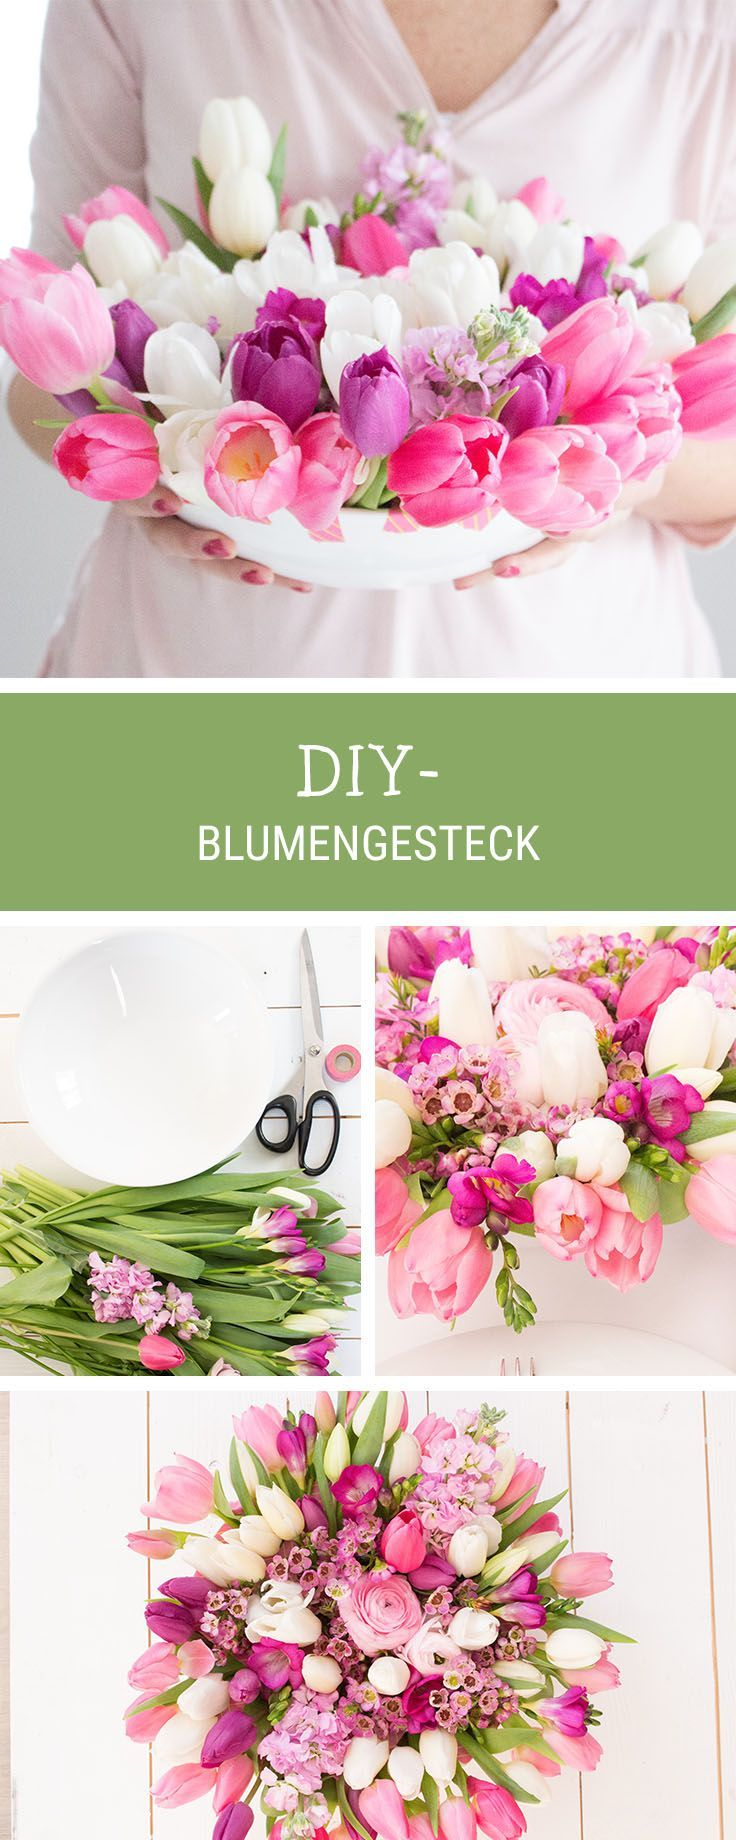 diy anleitung fr hlingshaftes blumengesteck selber machen via blumengestecke. Black Bedroom Furniture Sets. Home Design Ideas